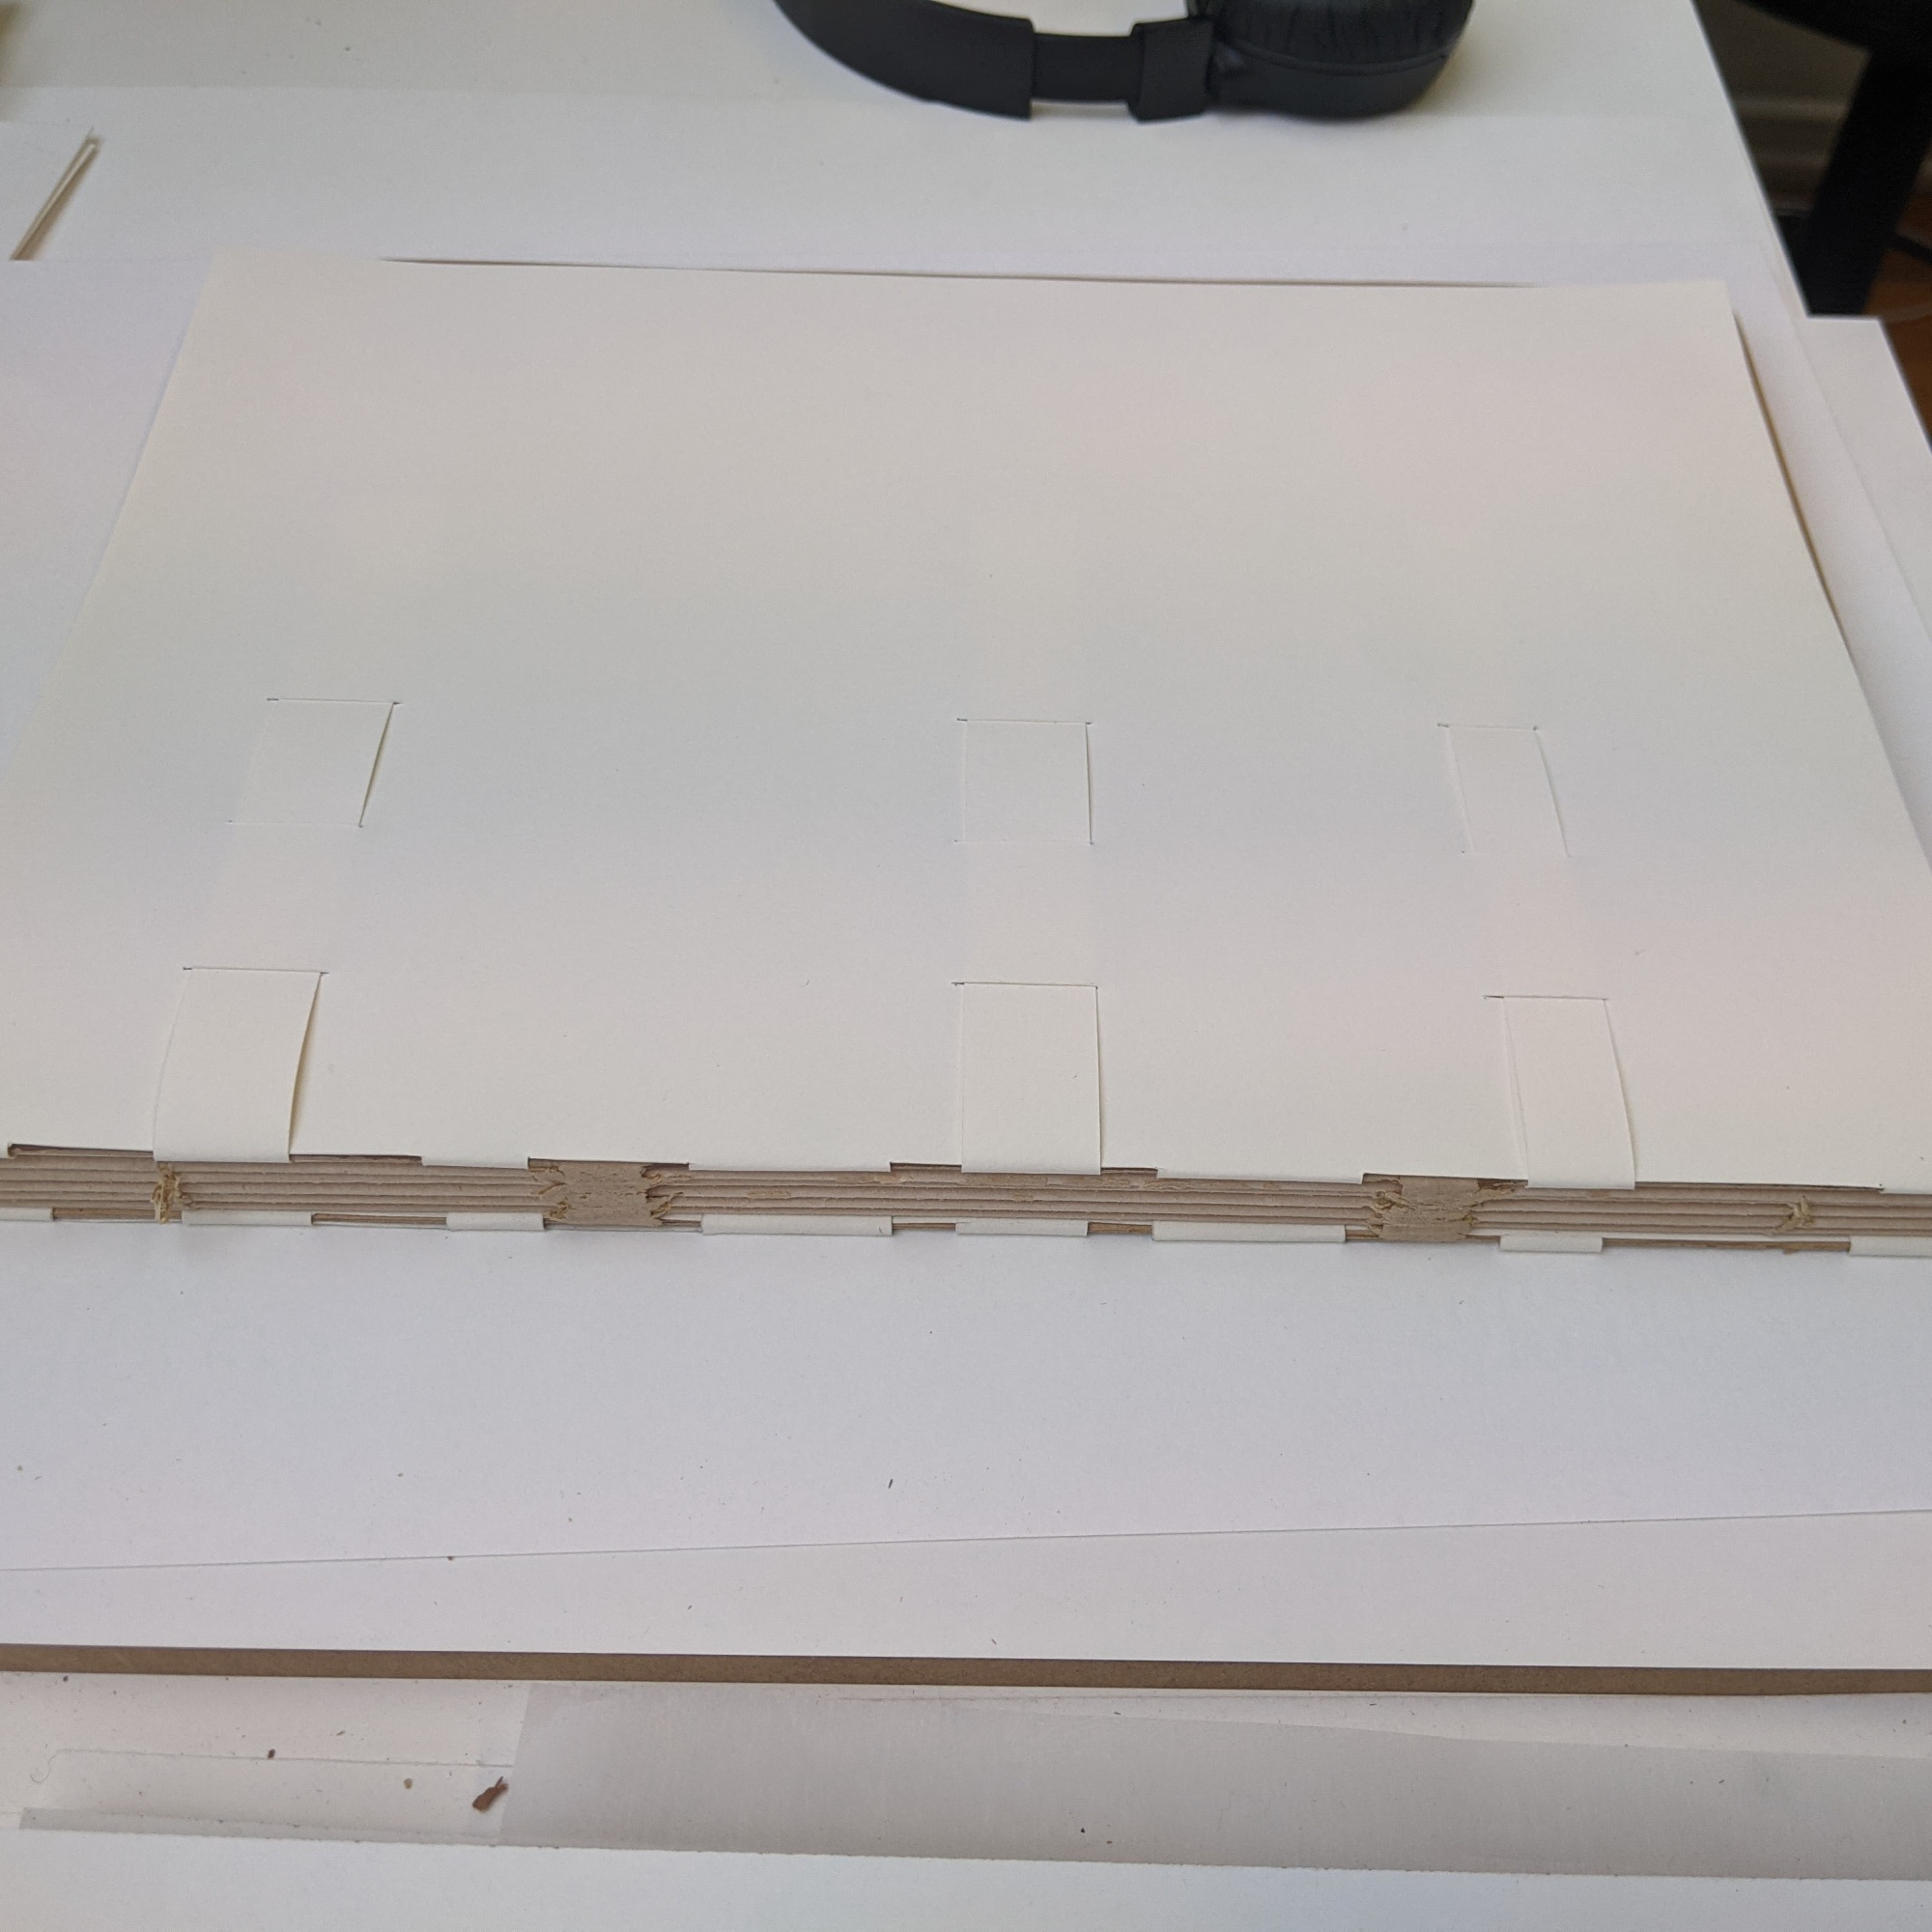 Image shows the construction of a wrapper which wraps around the board of the book around the spine edge. It is made up of two sheets of buffered archival paper which has tabs cut out that pass around the spine edge of the board to the other side of the board. Then the tabs are woven into slots in the corresponding wrapper.